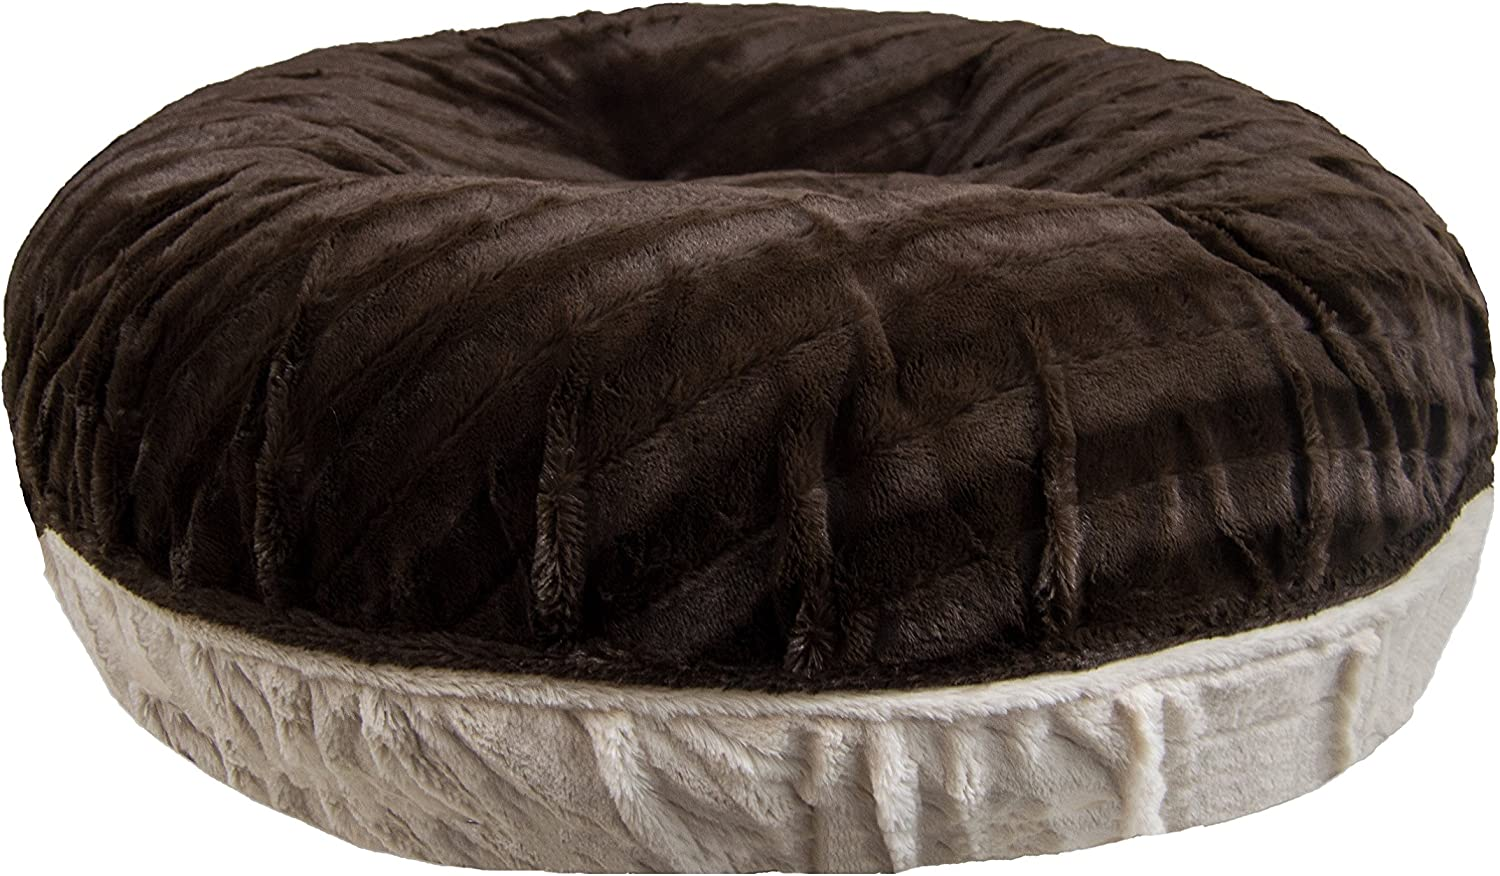 BESSIE AND BARNIE Signature Godiva Brown Natural Beauty Extra Plush Faux Fur Bagel Pet Dog Bed (Multiple Sizes)